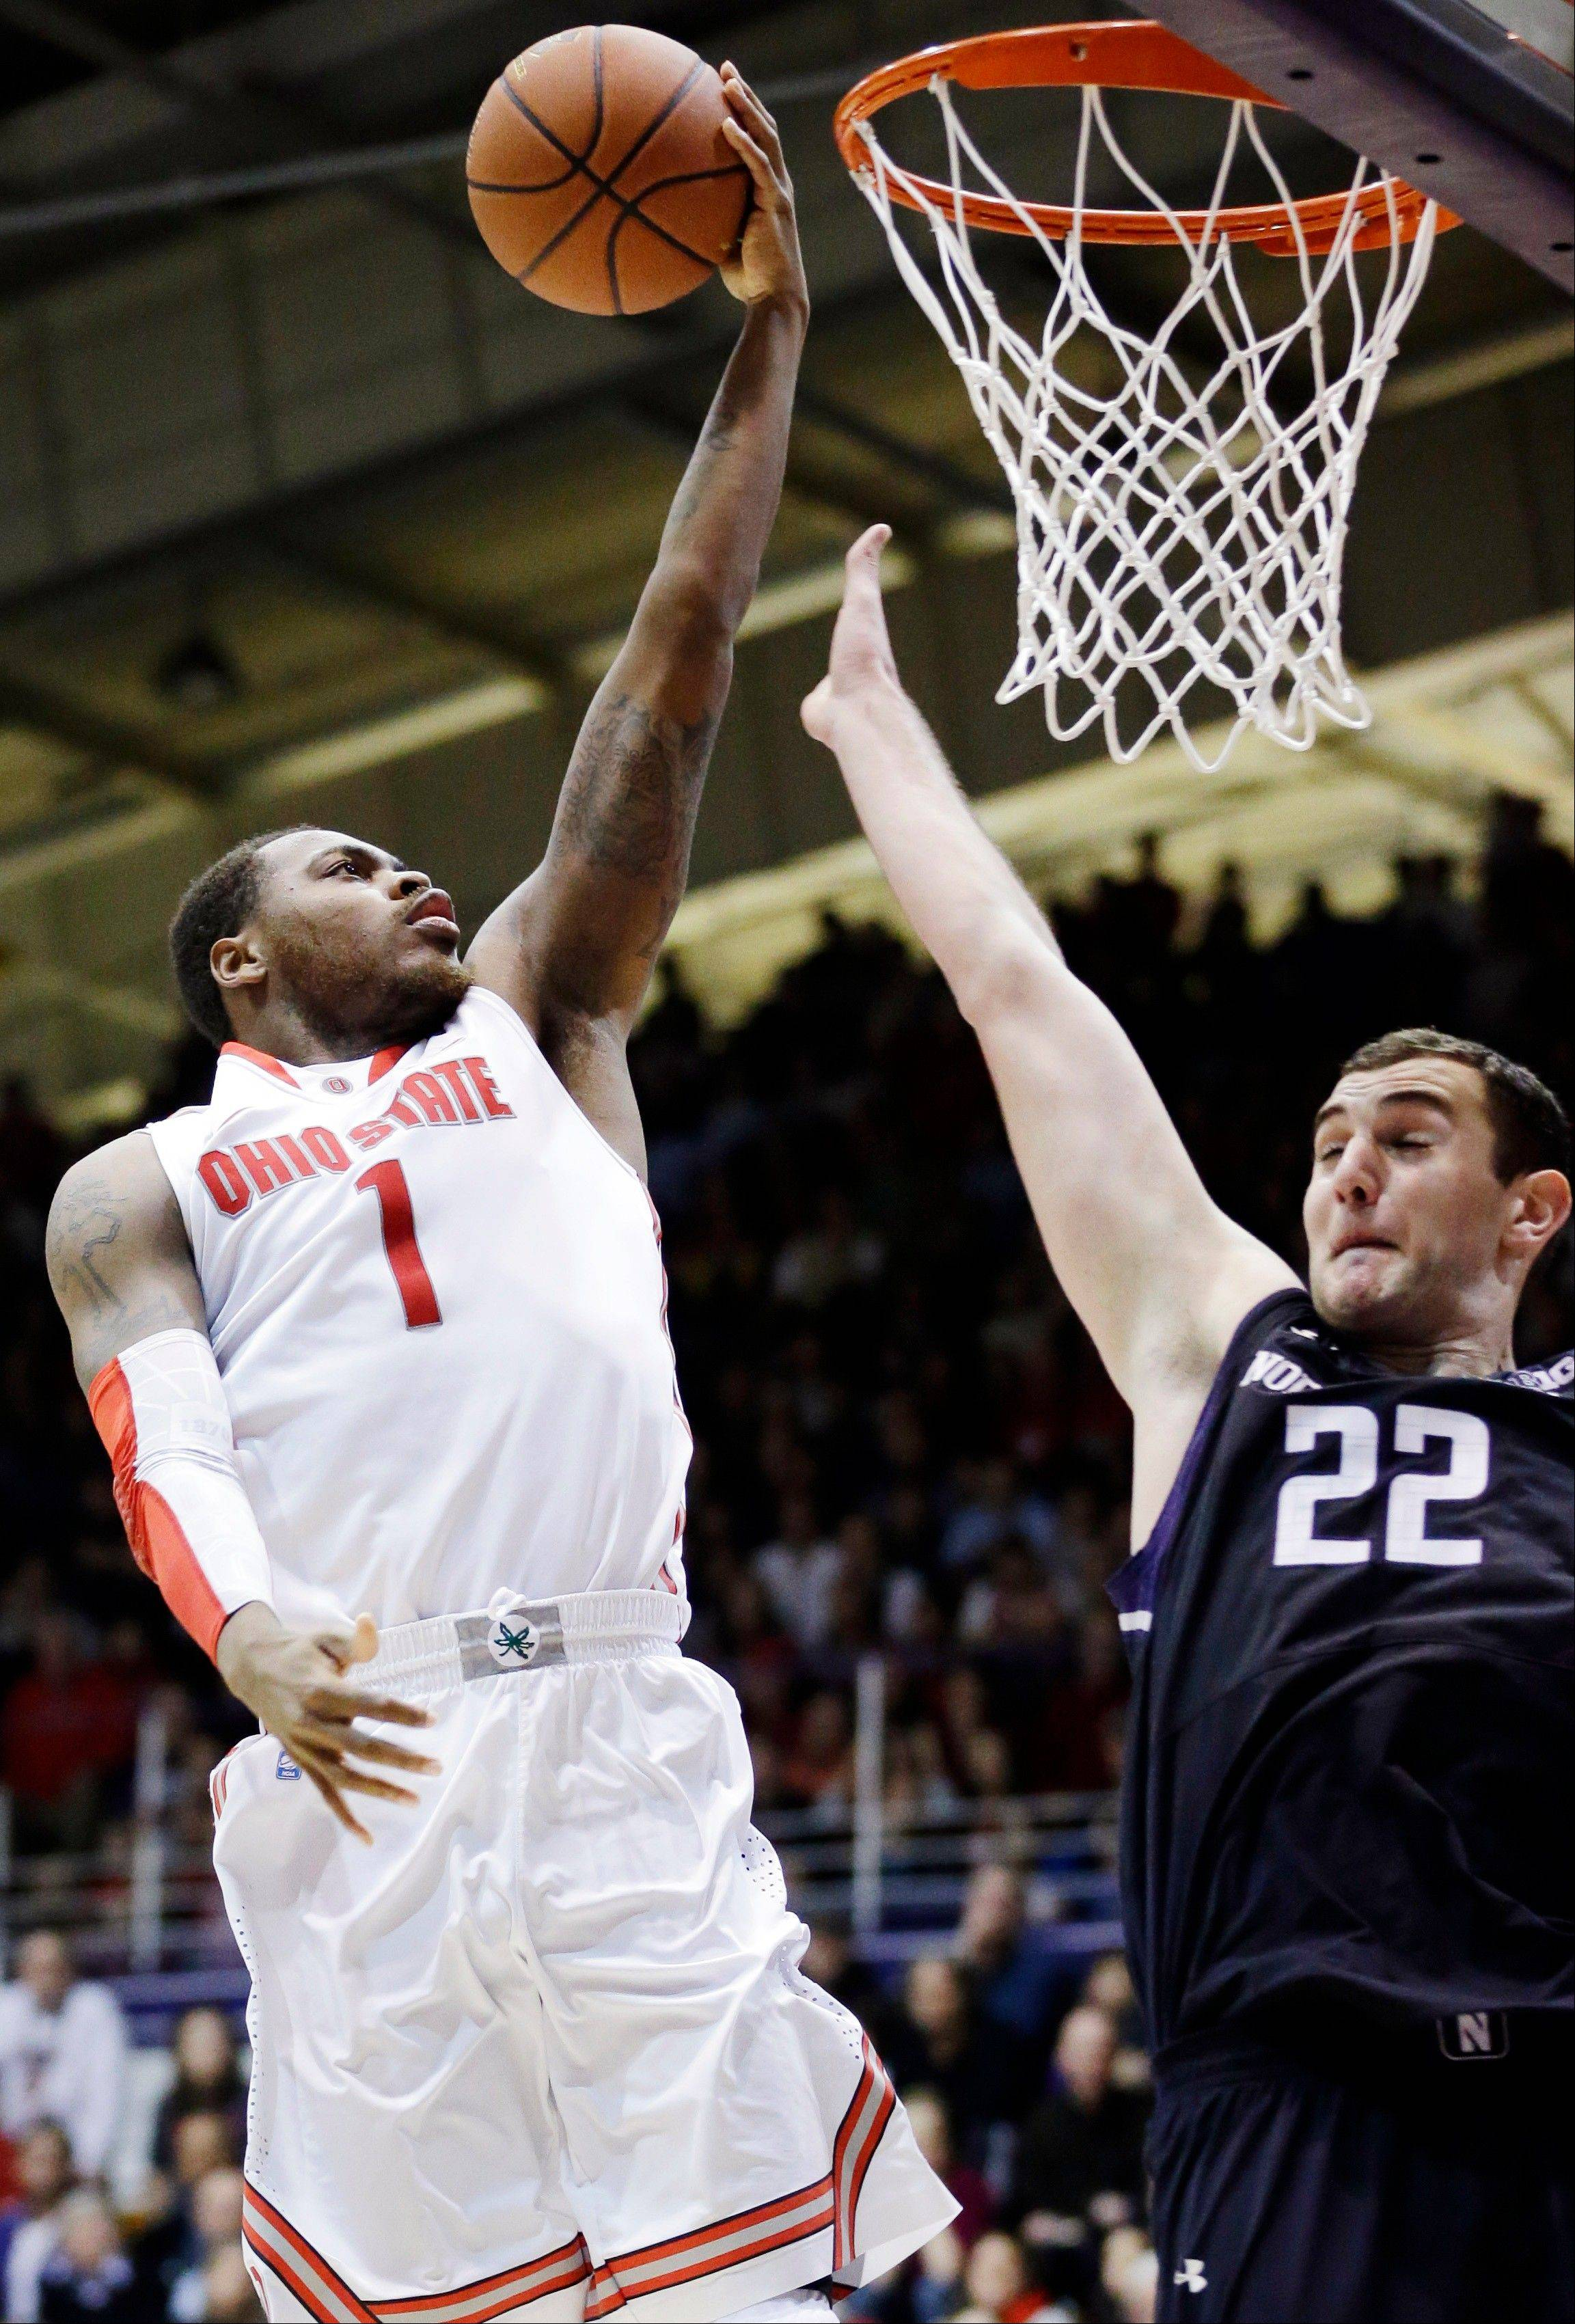 Ohio State forward DeShaun Thomas (1) drives to the basket against Northwestern center Alex Olah during the second half of an NCAA college basketball game in Evanston, Ill., Thursday, Feb. 28, 2013. Ohio State won 63-53. (AP Photo/Nam Y. Huh)